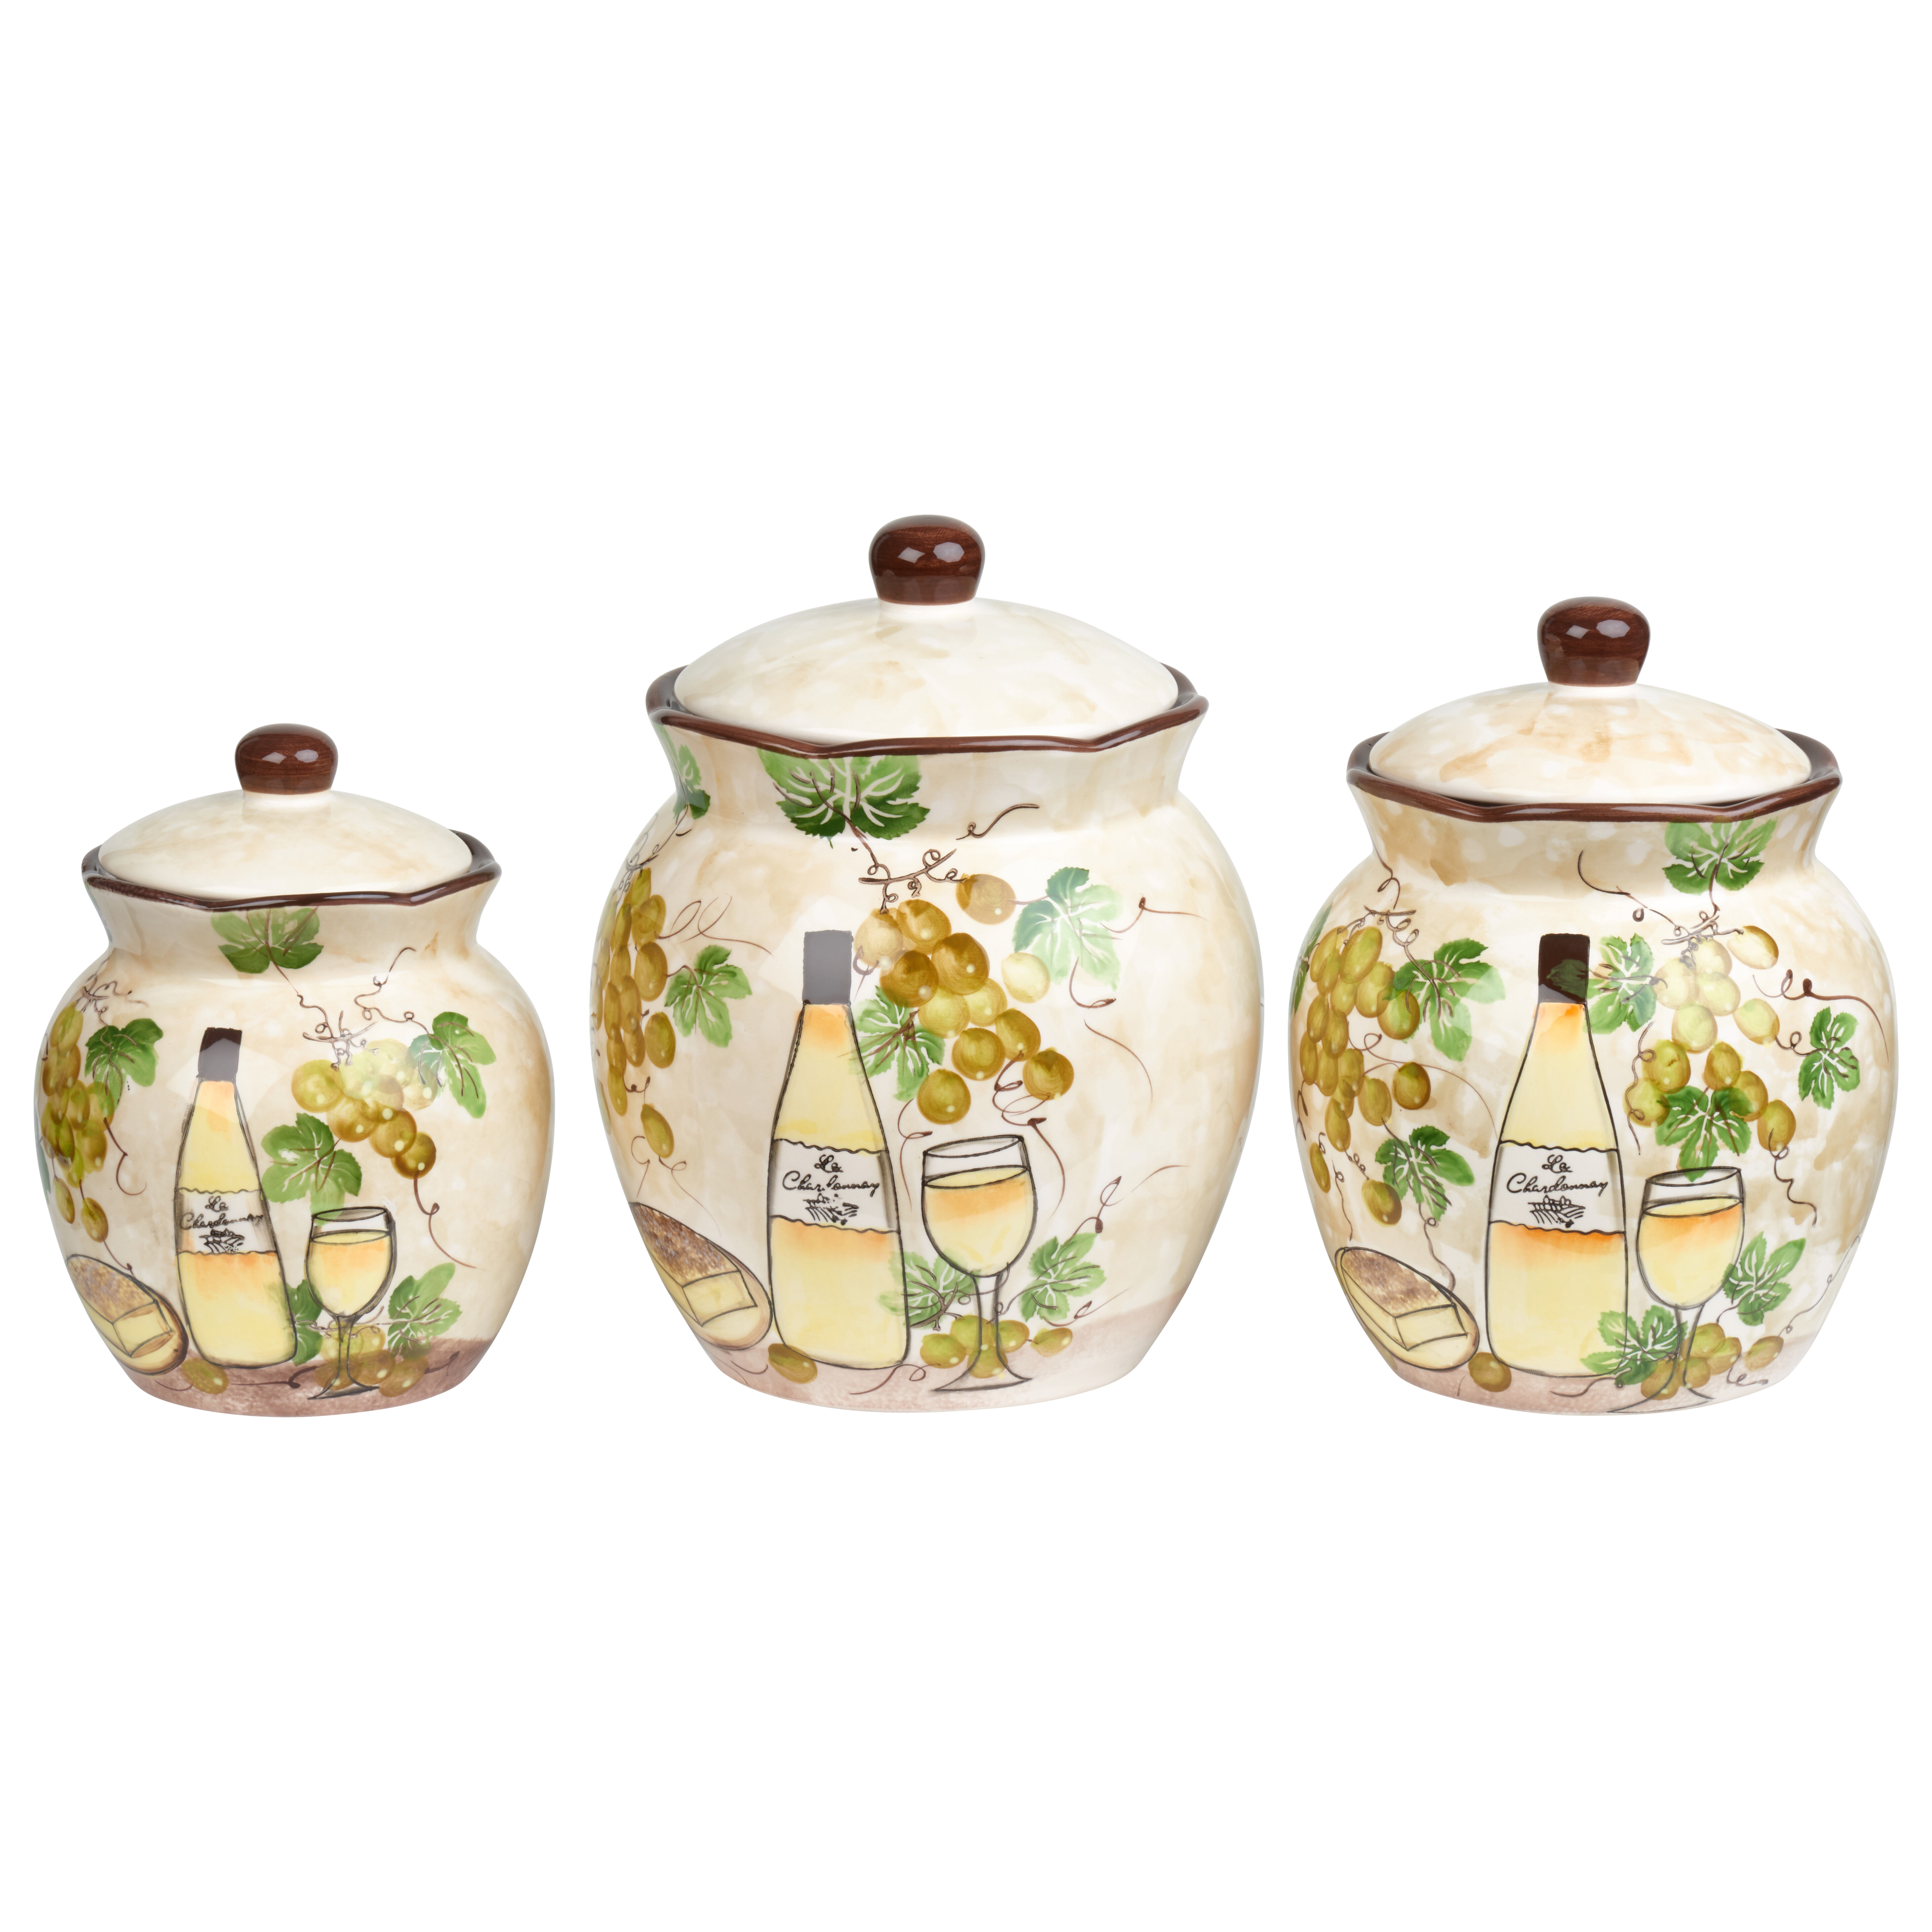 Merveilleux Lorren Home Trends Grape Ceramic Deluxe 3 Piece Kitchen Canister Set |  Wayfair